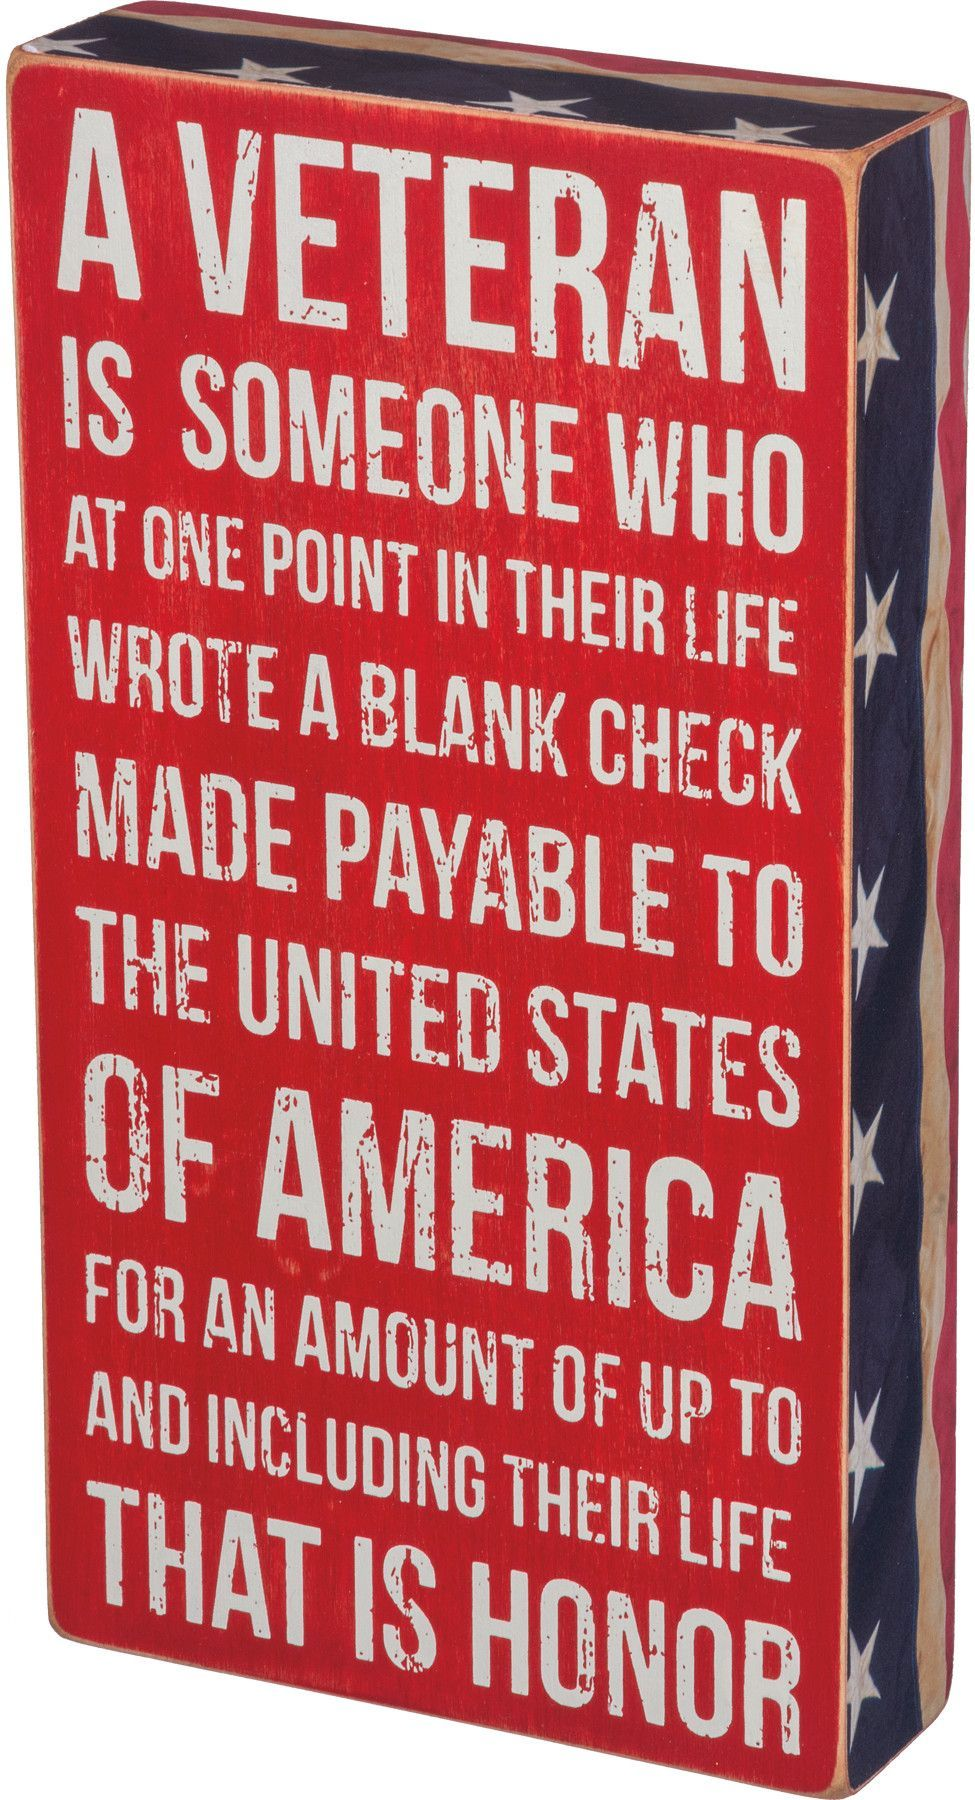 "Show your pride for the American Service member in your life. This box sign is the perfect decoration for the summer holidays or year round. ""A veteran is someone who at one point in their life wrote"